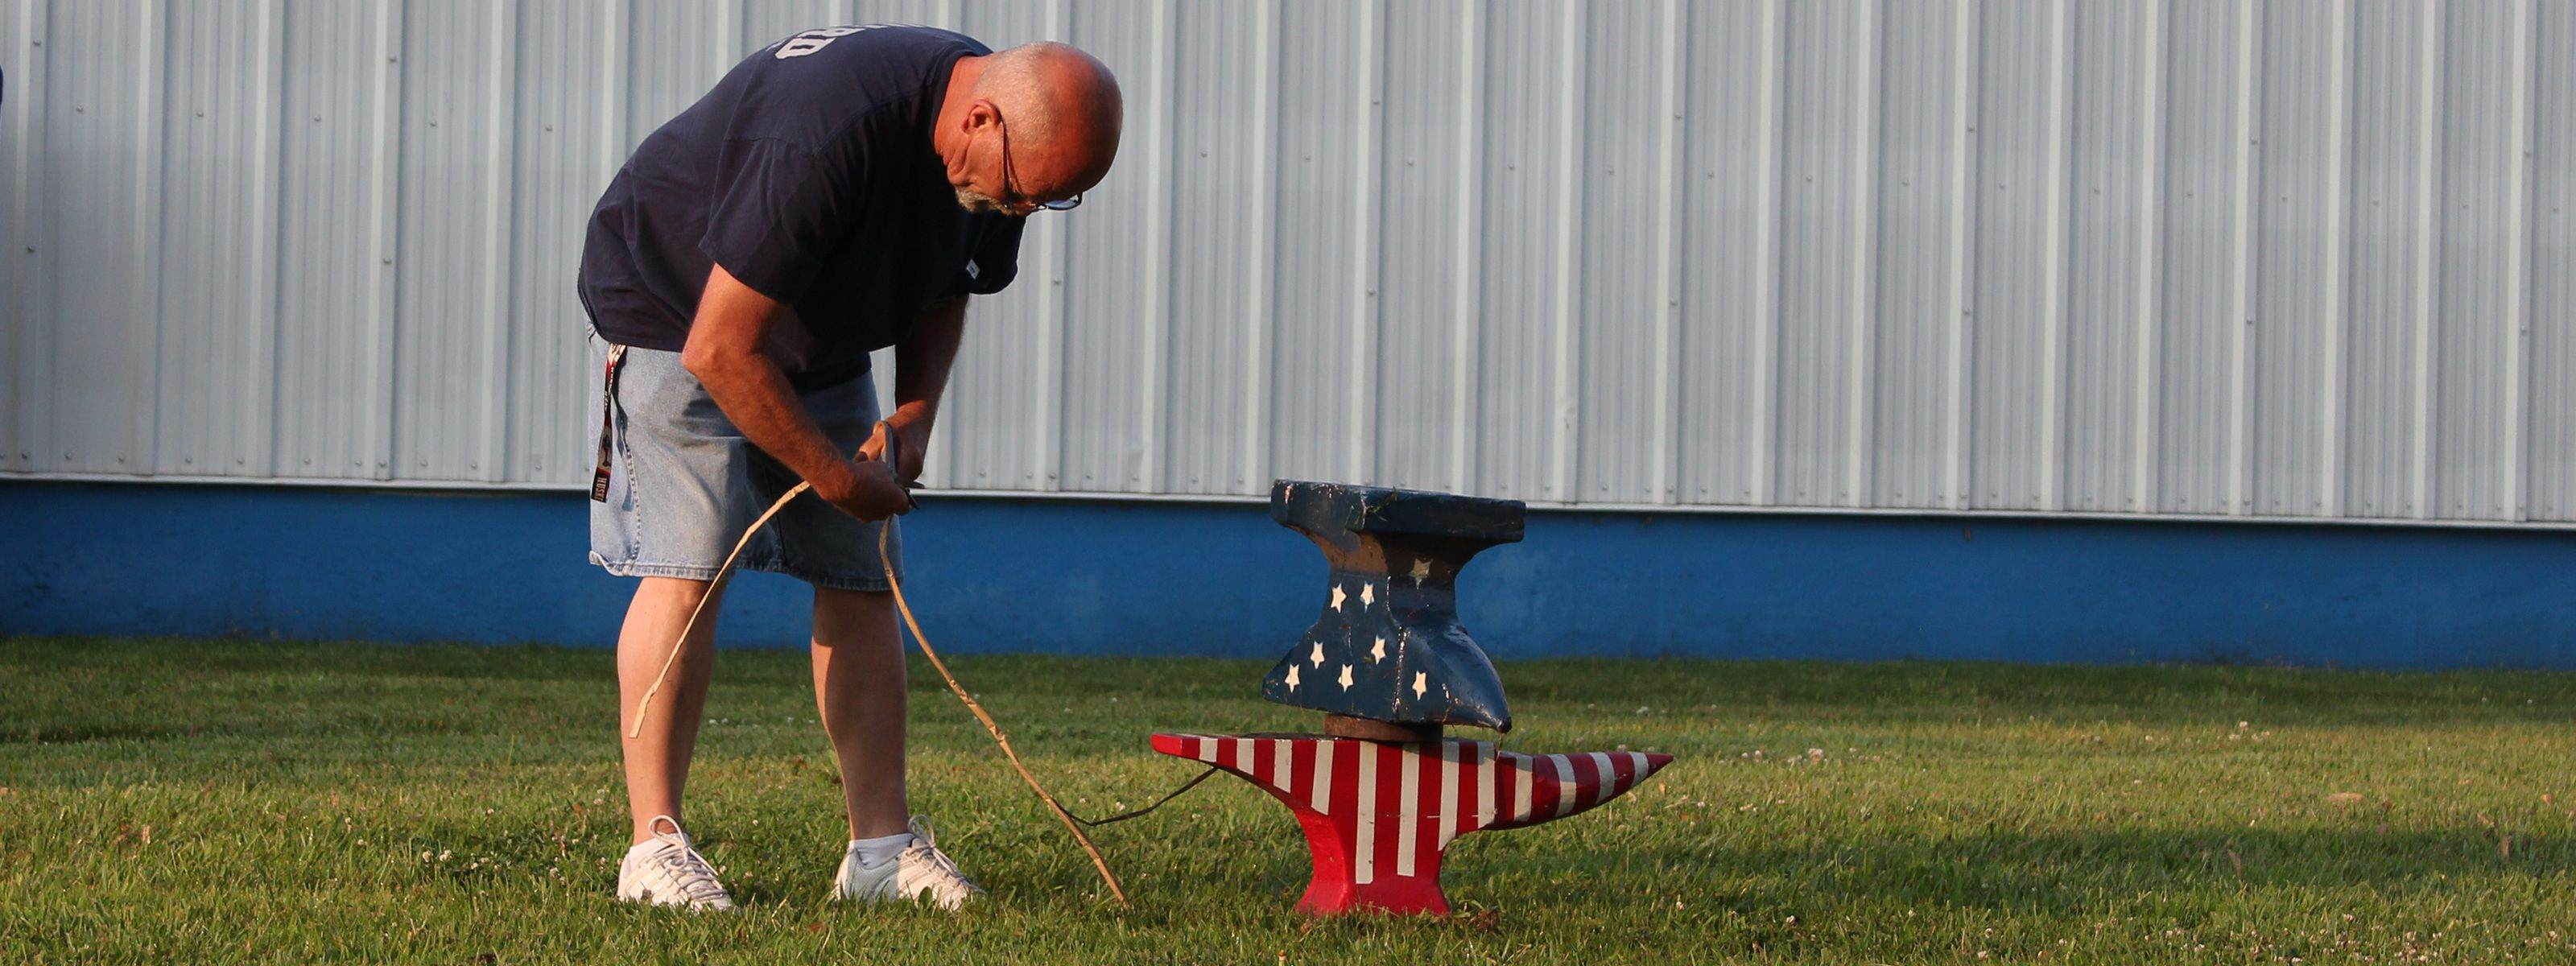 Anvil Firing at the 4th of July Celebration in Seward, Nebraska